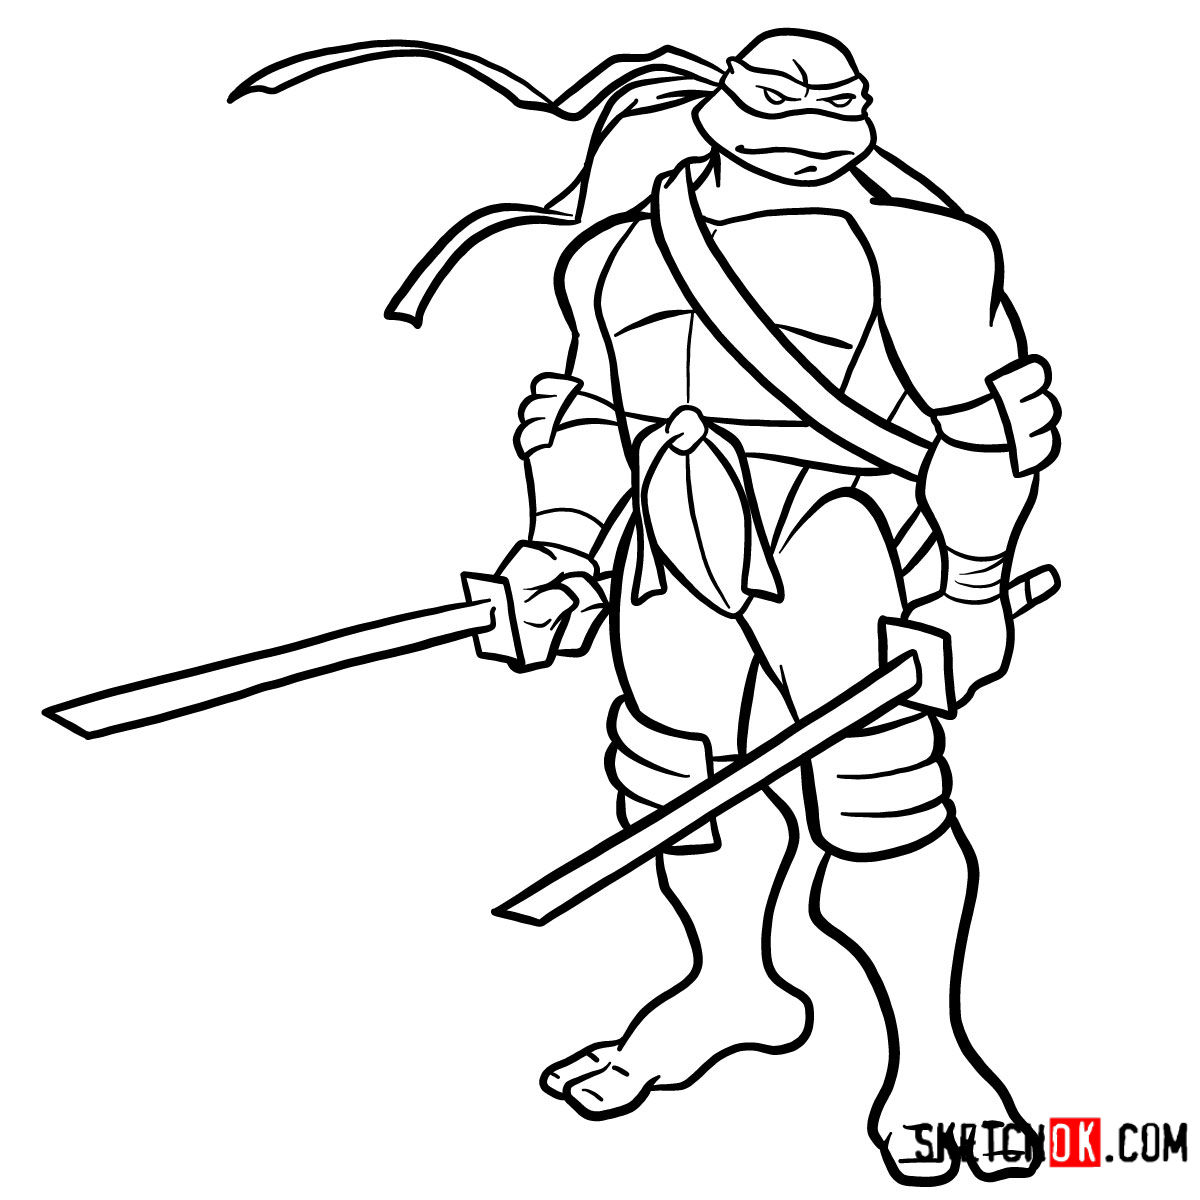 How To Draw Leonardo With Ninjatos